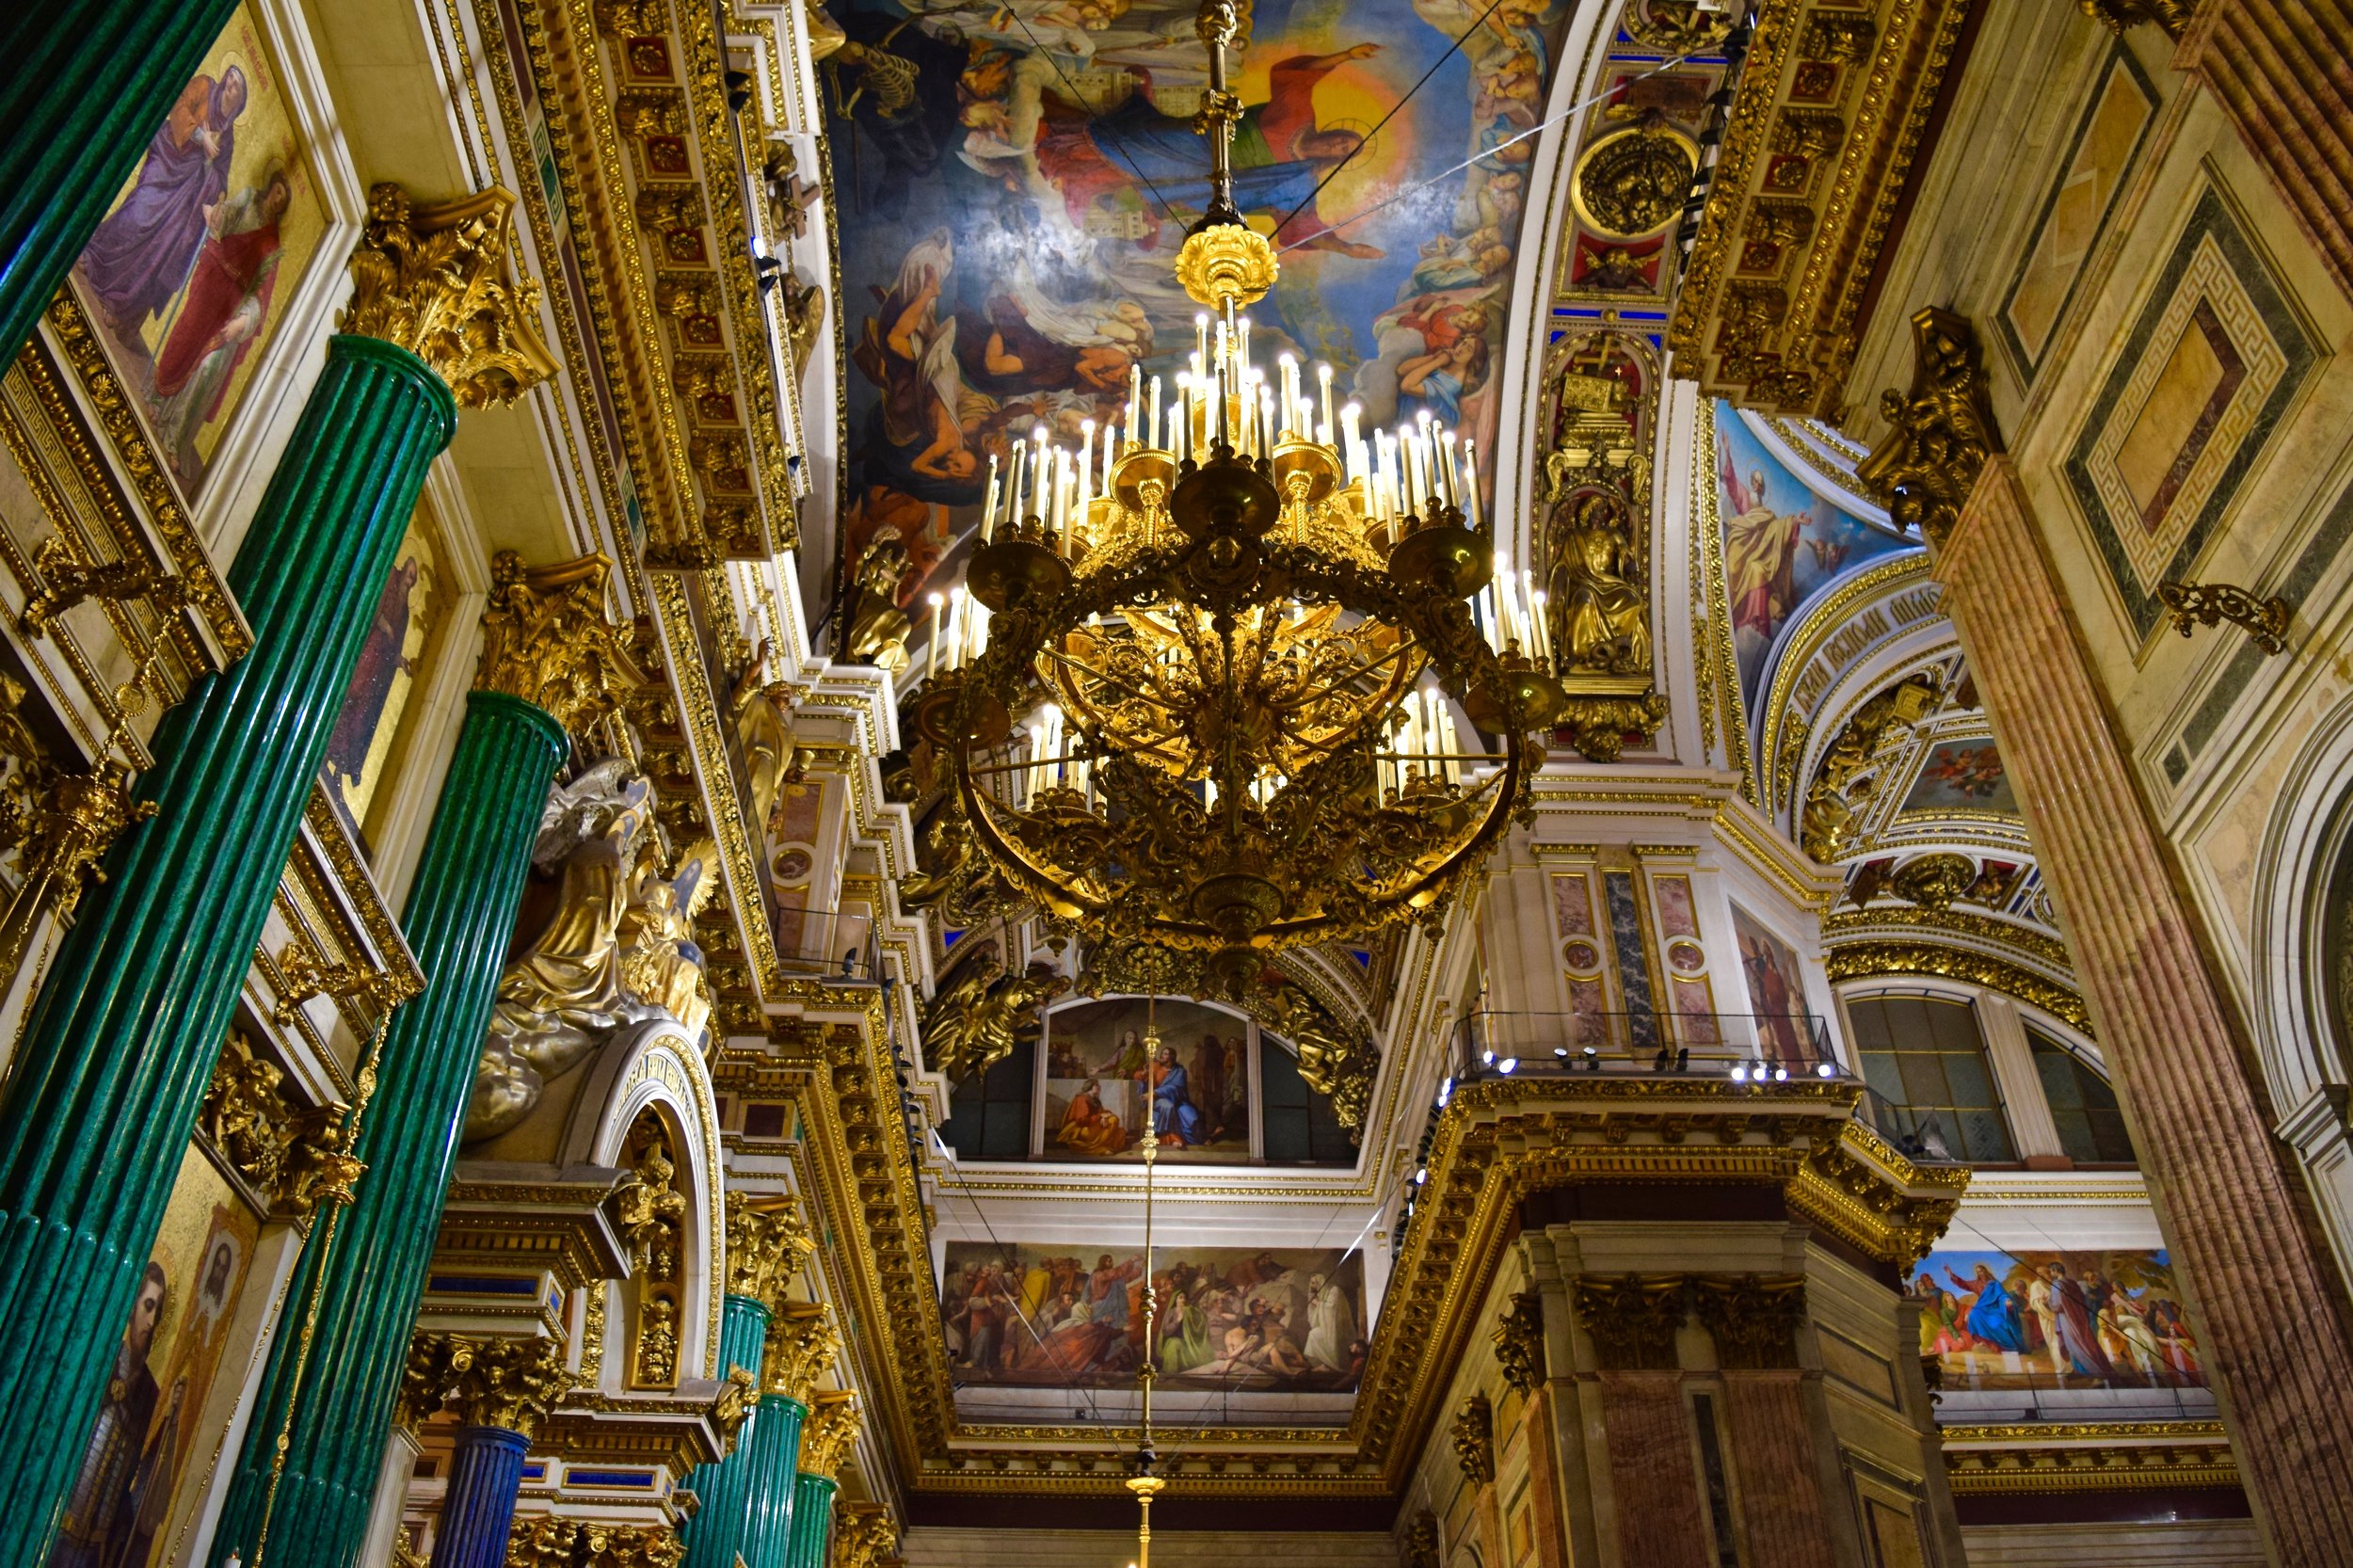 St. Isaac's Cathedral, interior